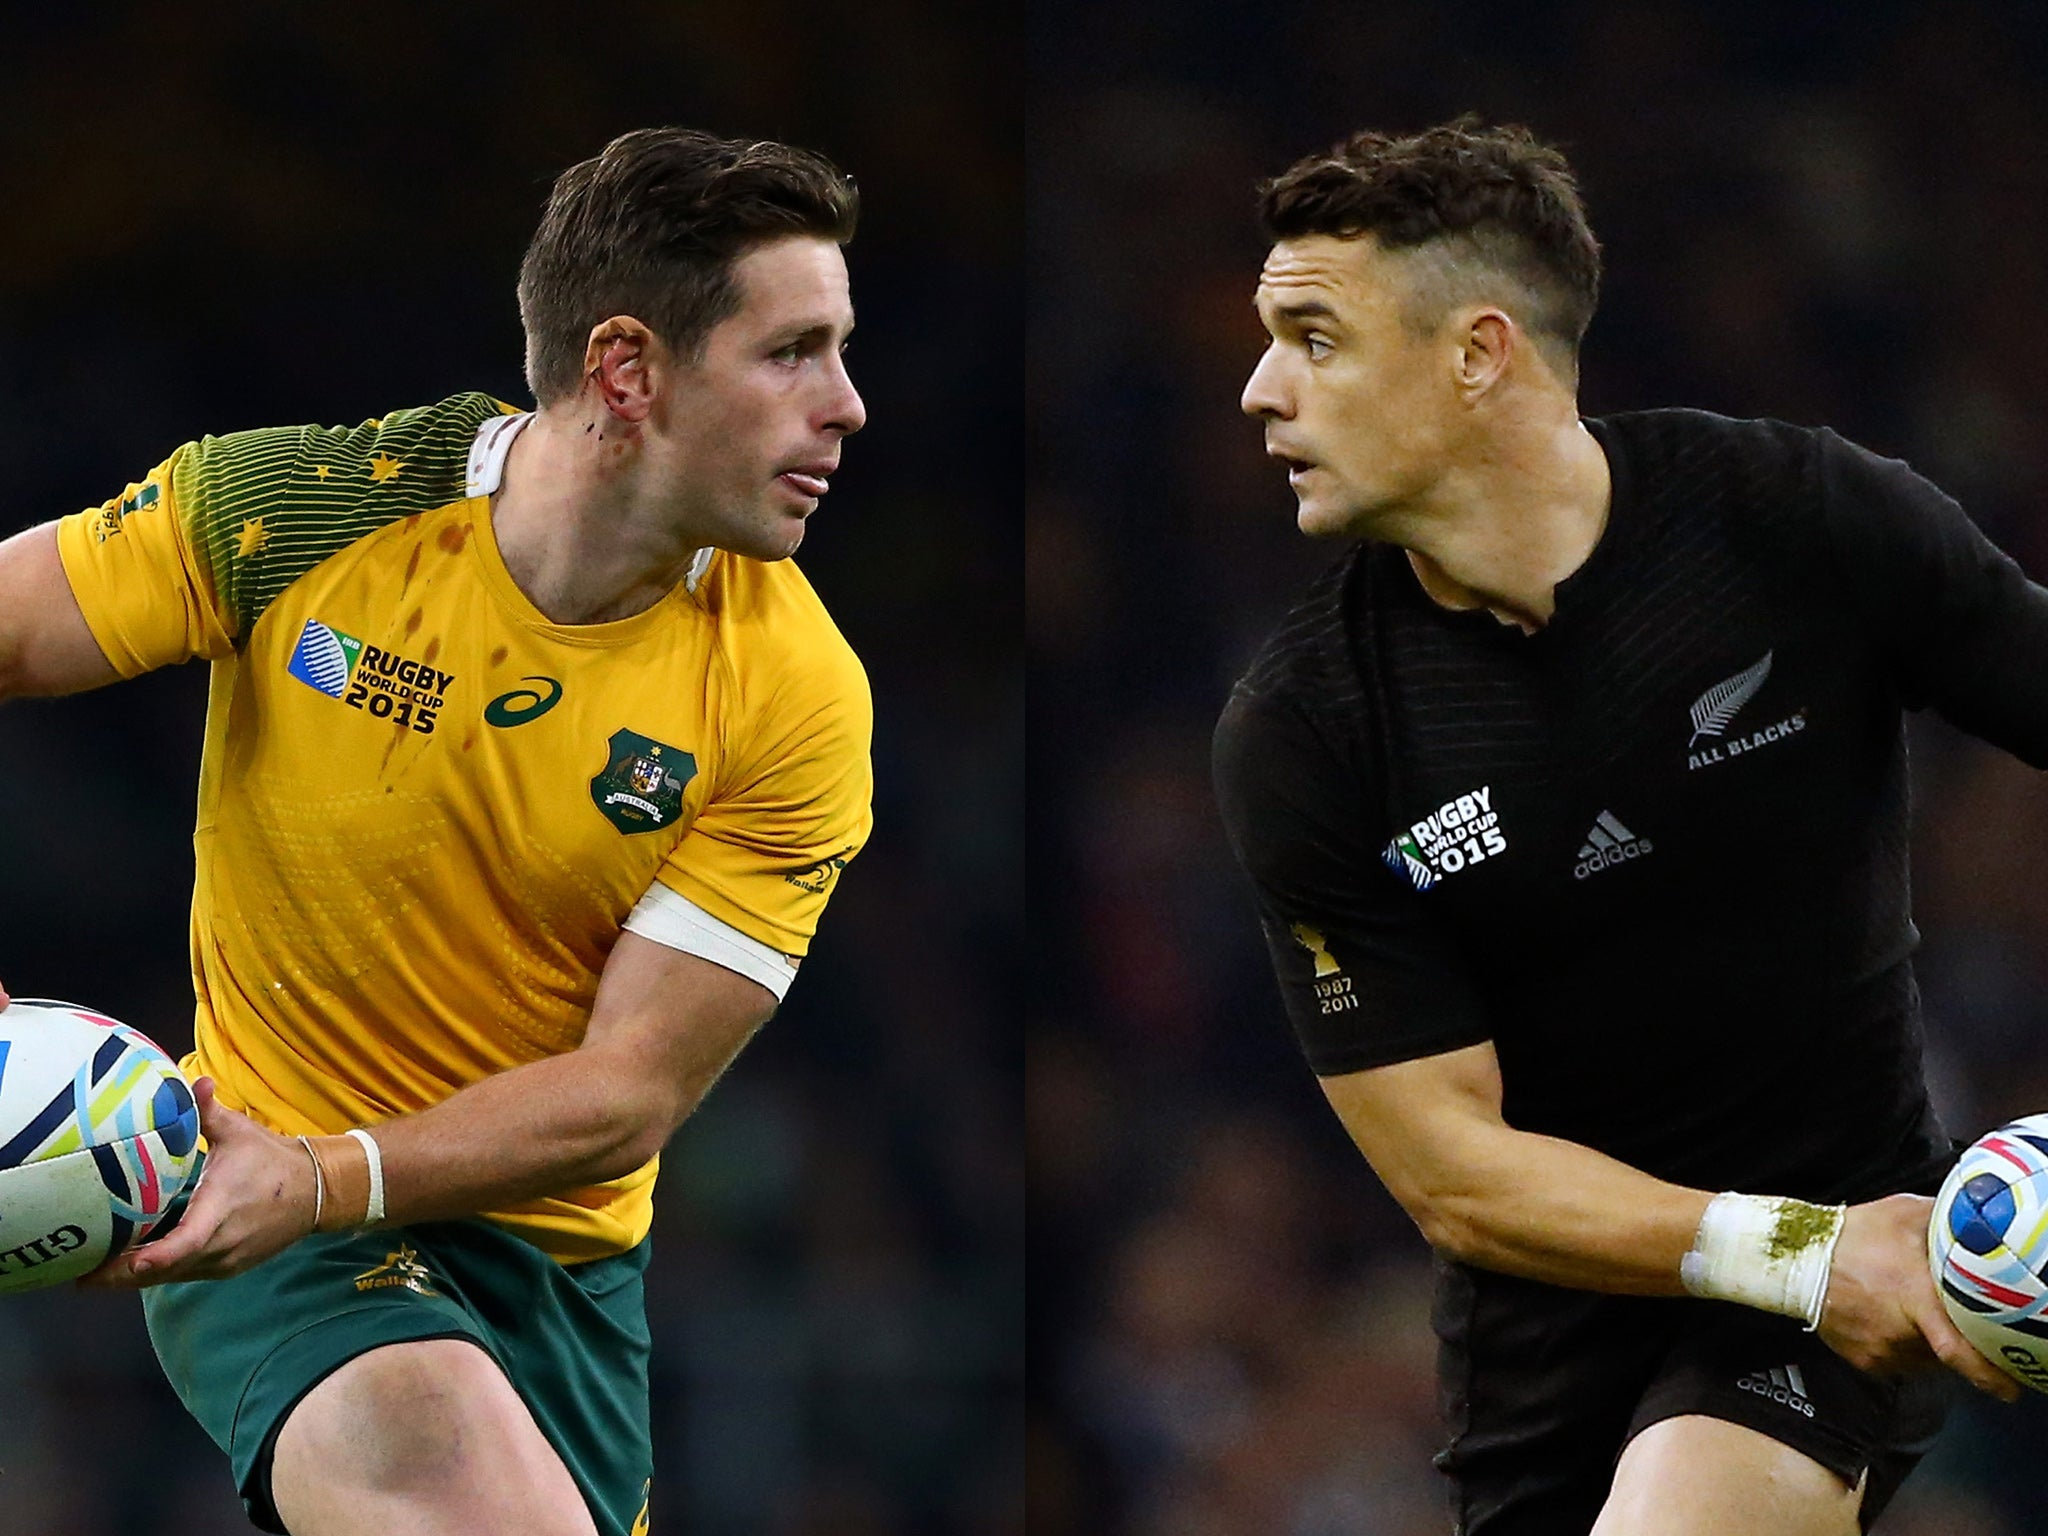 New Zealand Time Twitter: New Zealand Vs Australia Rugby World Cup 2015 Final: What